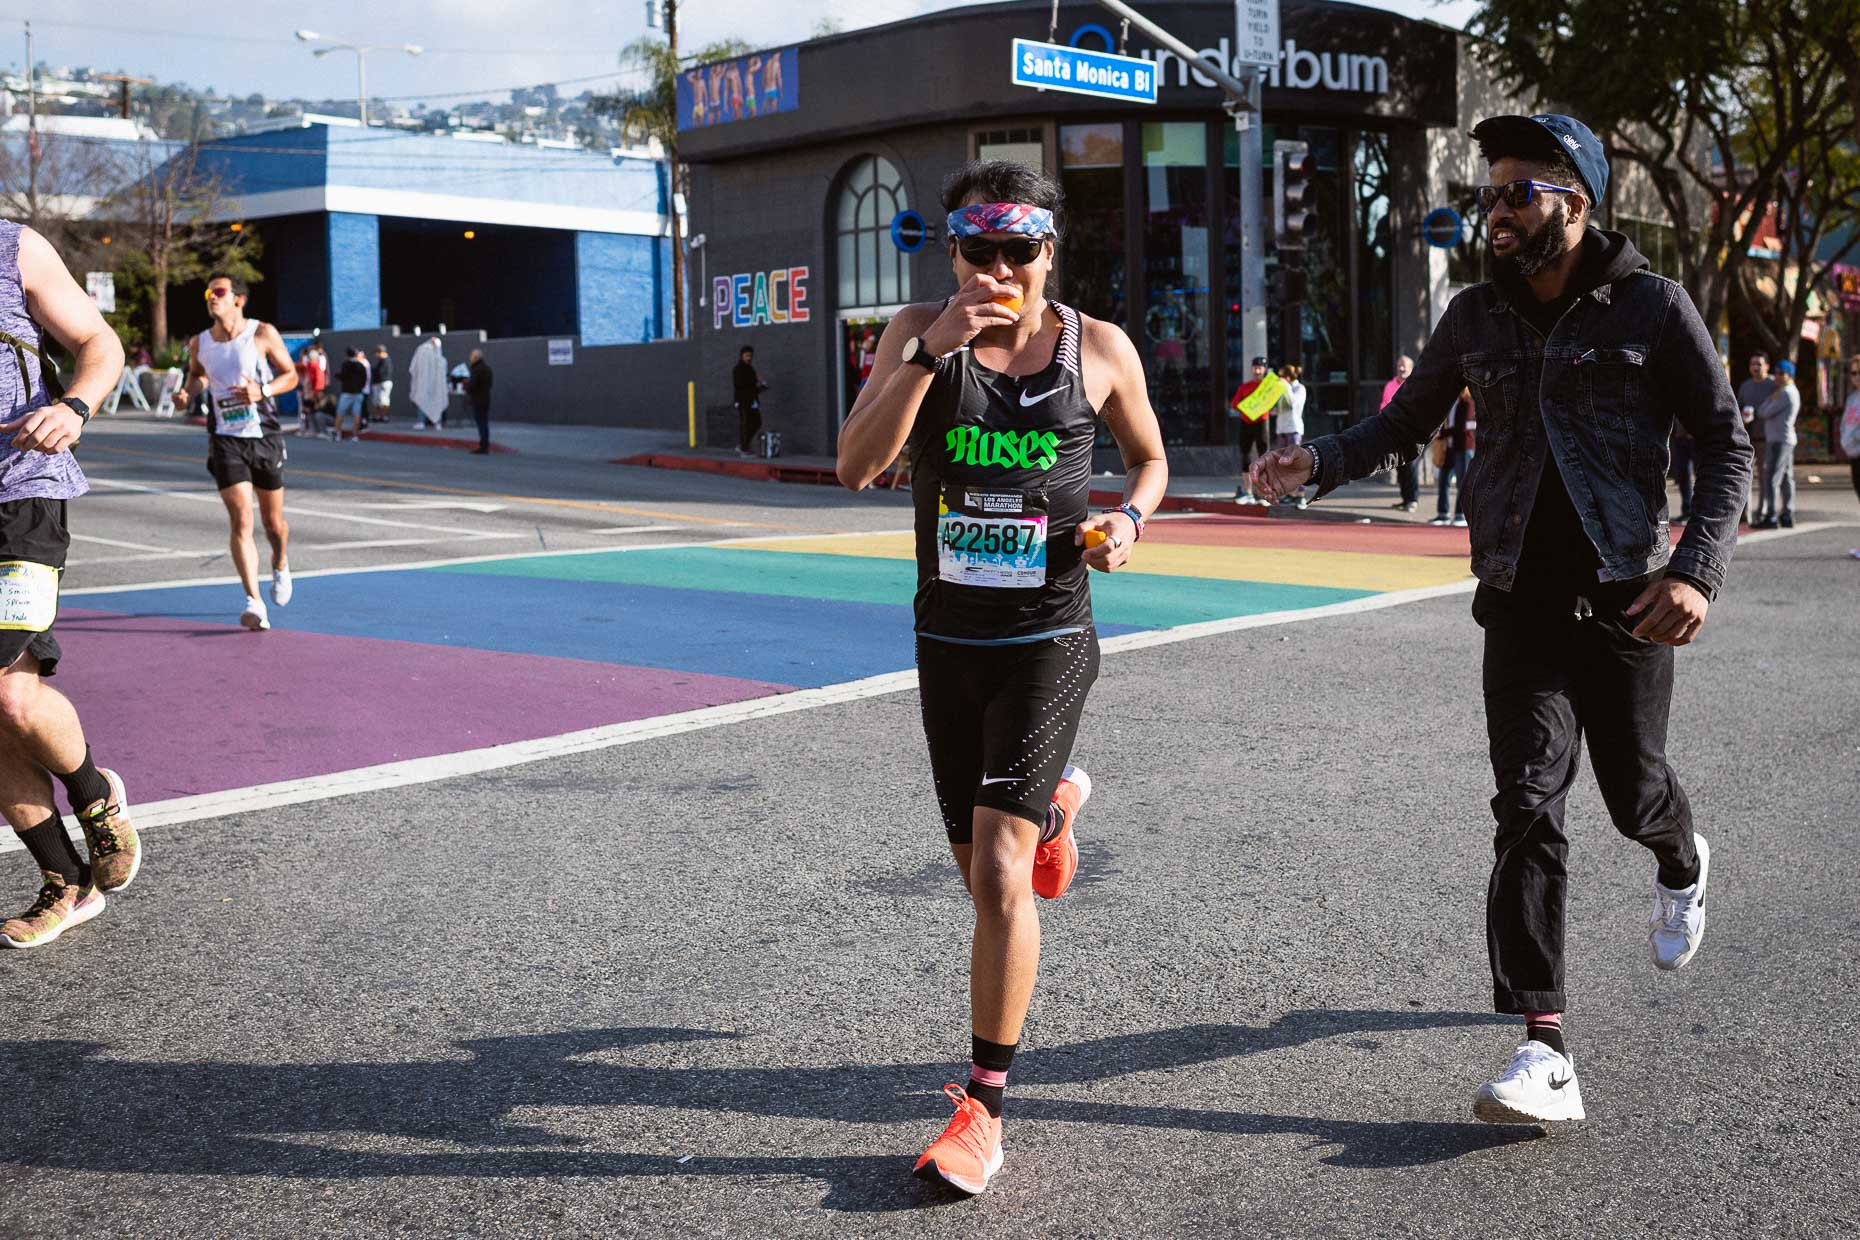 LA_Marathon_24_03_2019_photo_Christian_Brecheis-8163